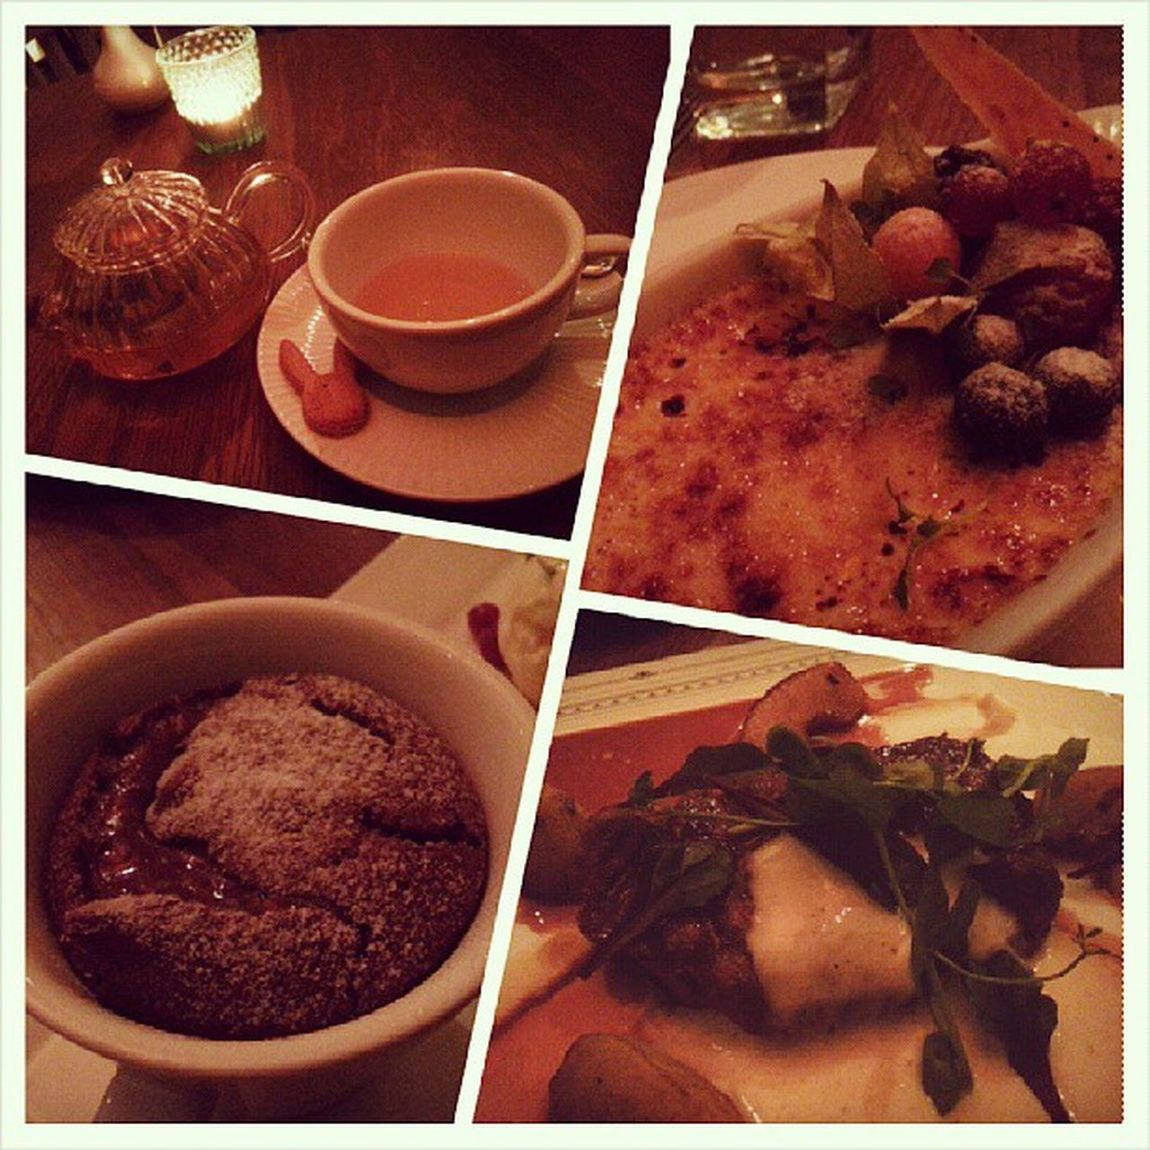 Char-grilled Mangalica Pork Collar, Creme brulee with summer berries, Chocolate Moelleux and their signature tea with mix of organic German herbs with mint and green raisins. Thewhiterabbit Dessert Yummy food instafood foodie foodgasm fotd foodgram sgfood happytummy burpple